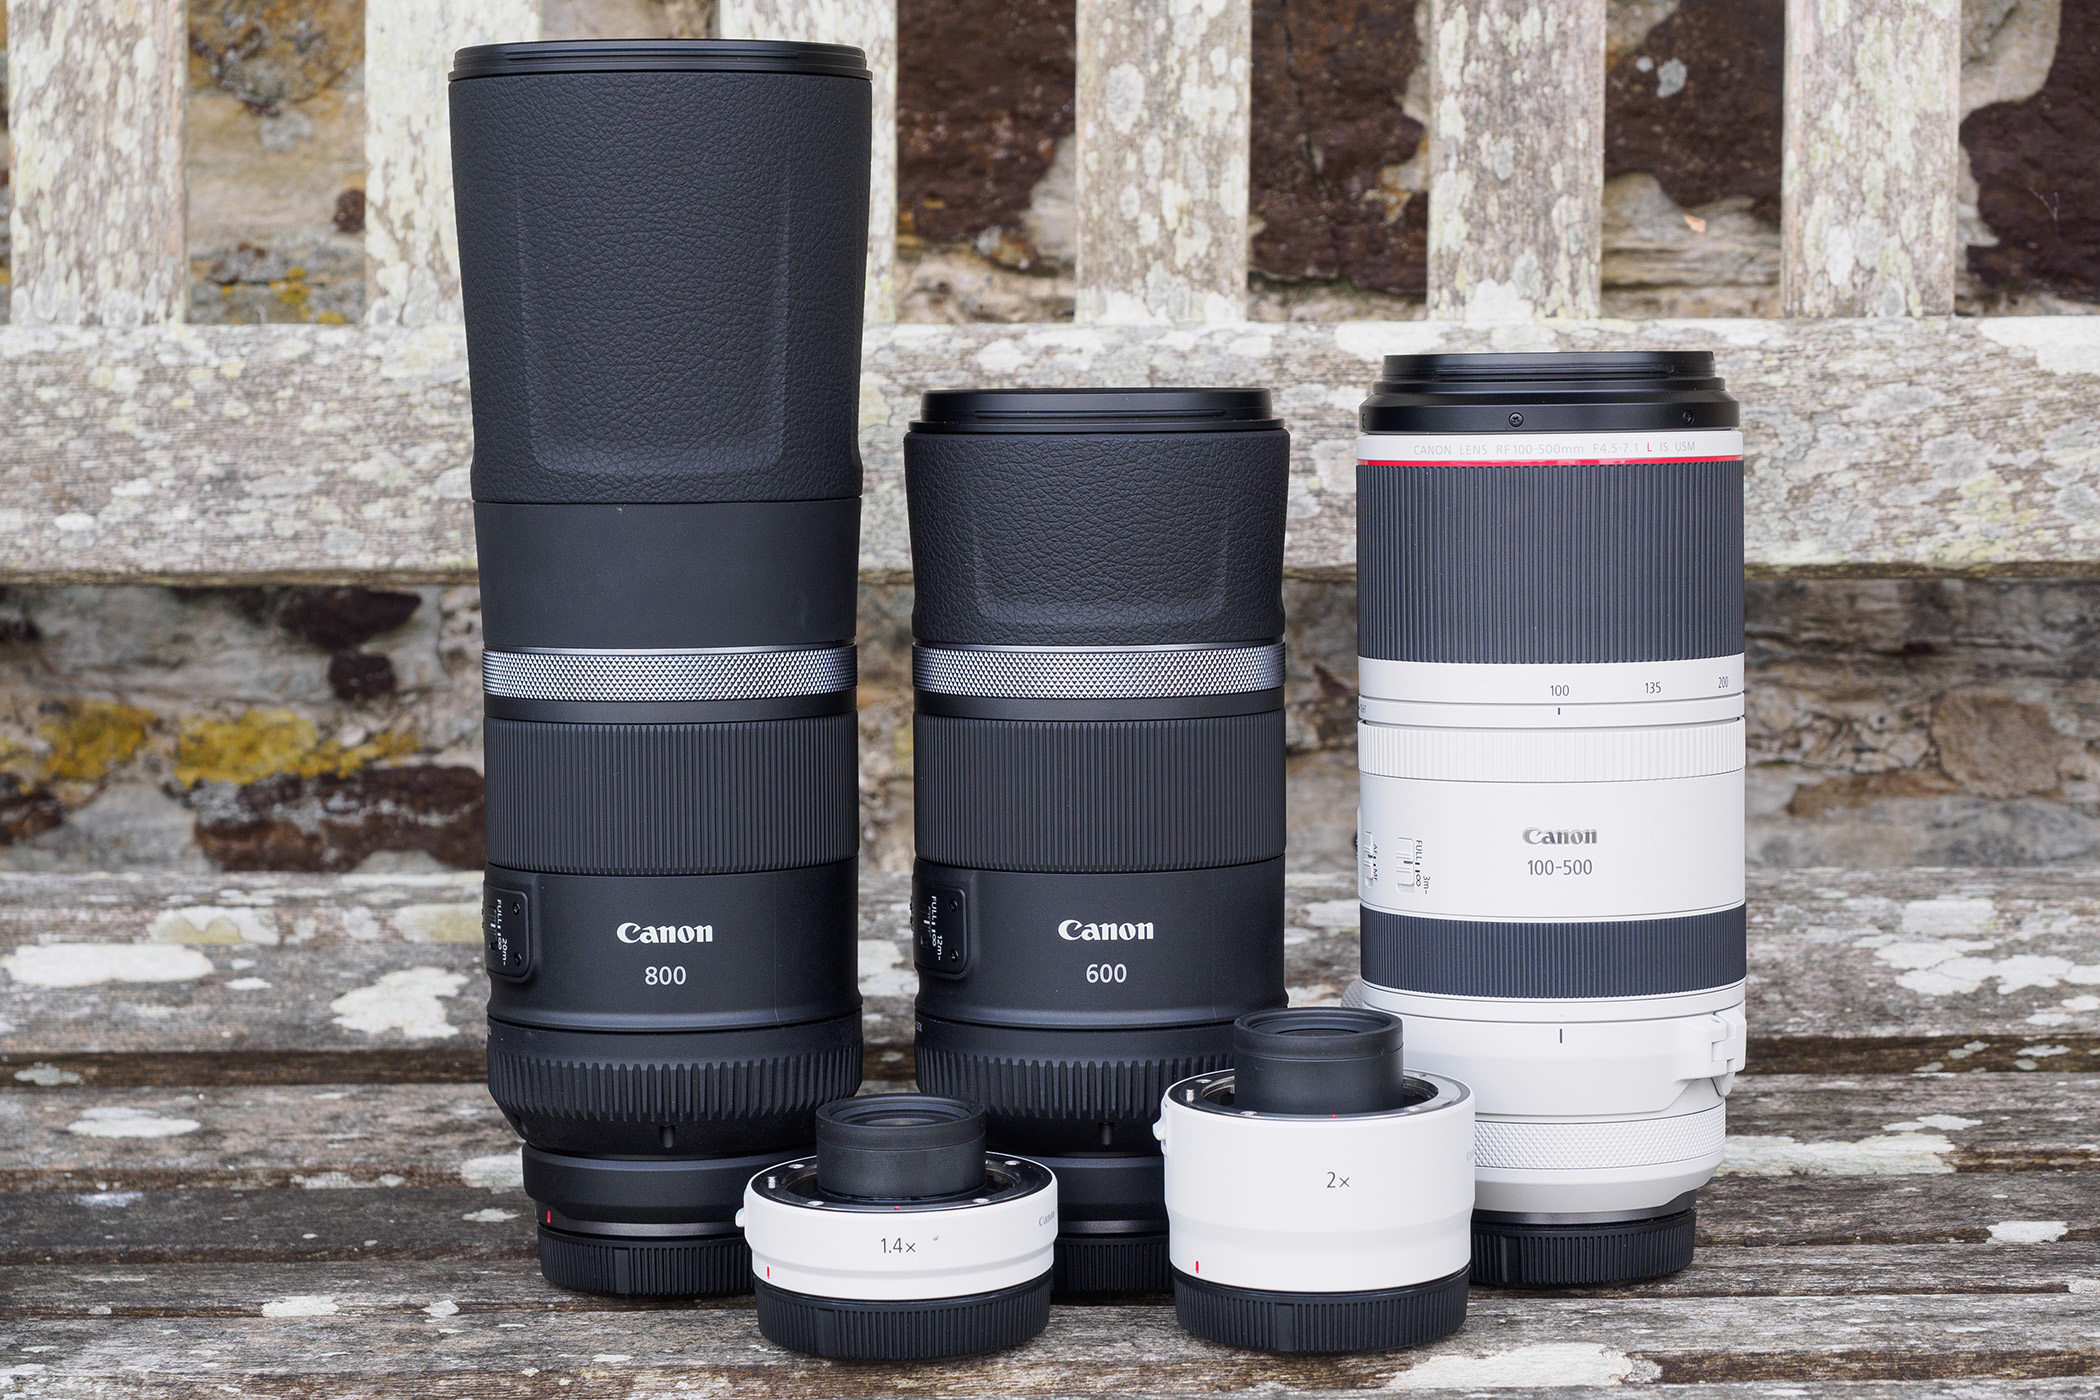 Canon reveals four RF telephoto lenses and two teleconverters - first look - Amateur Photographer